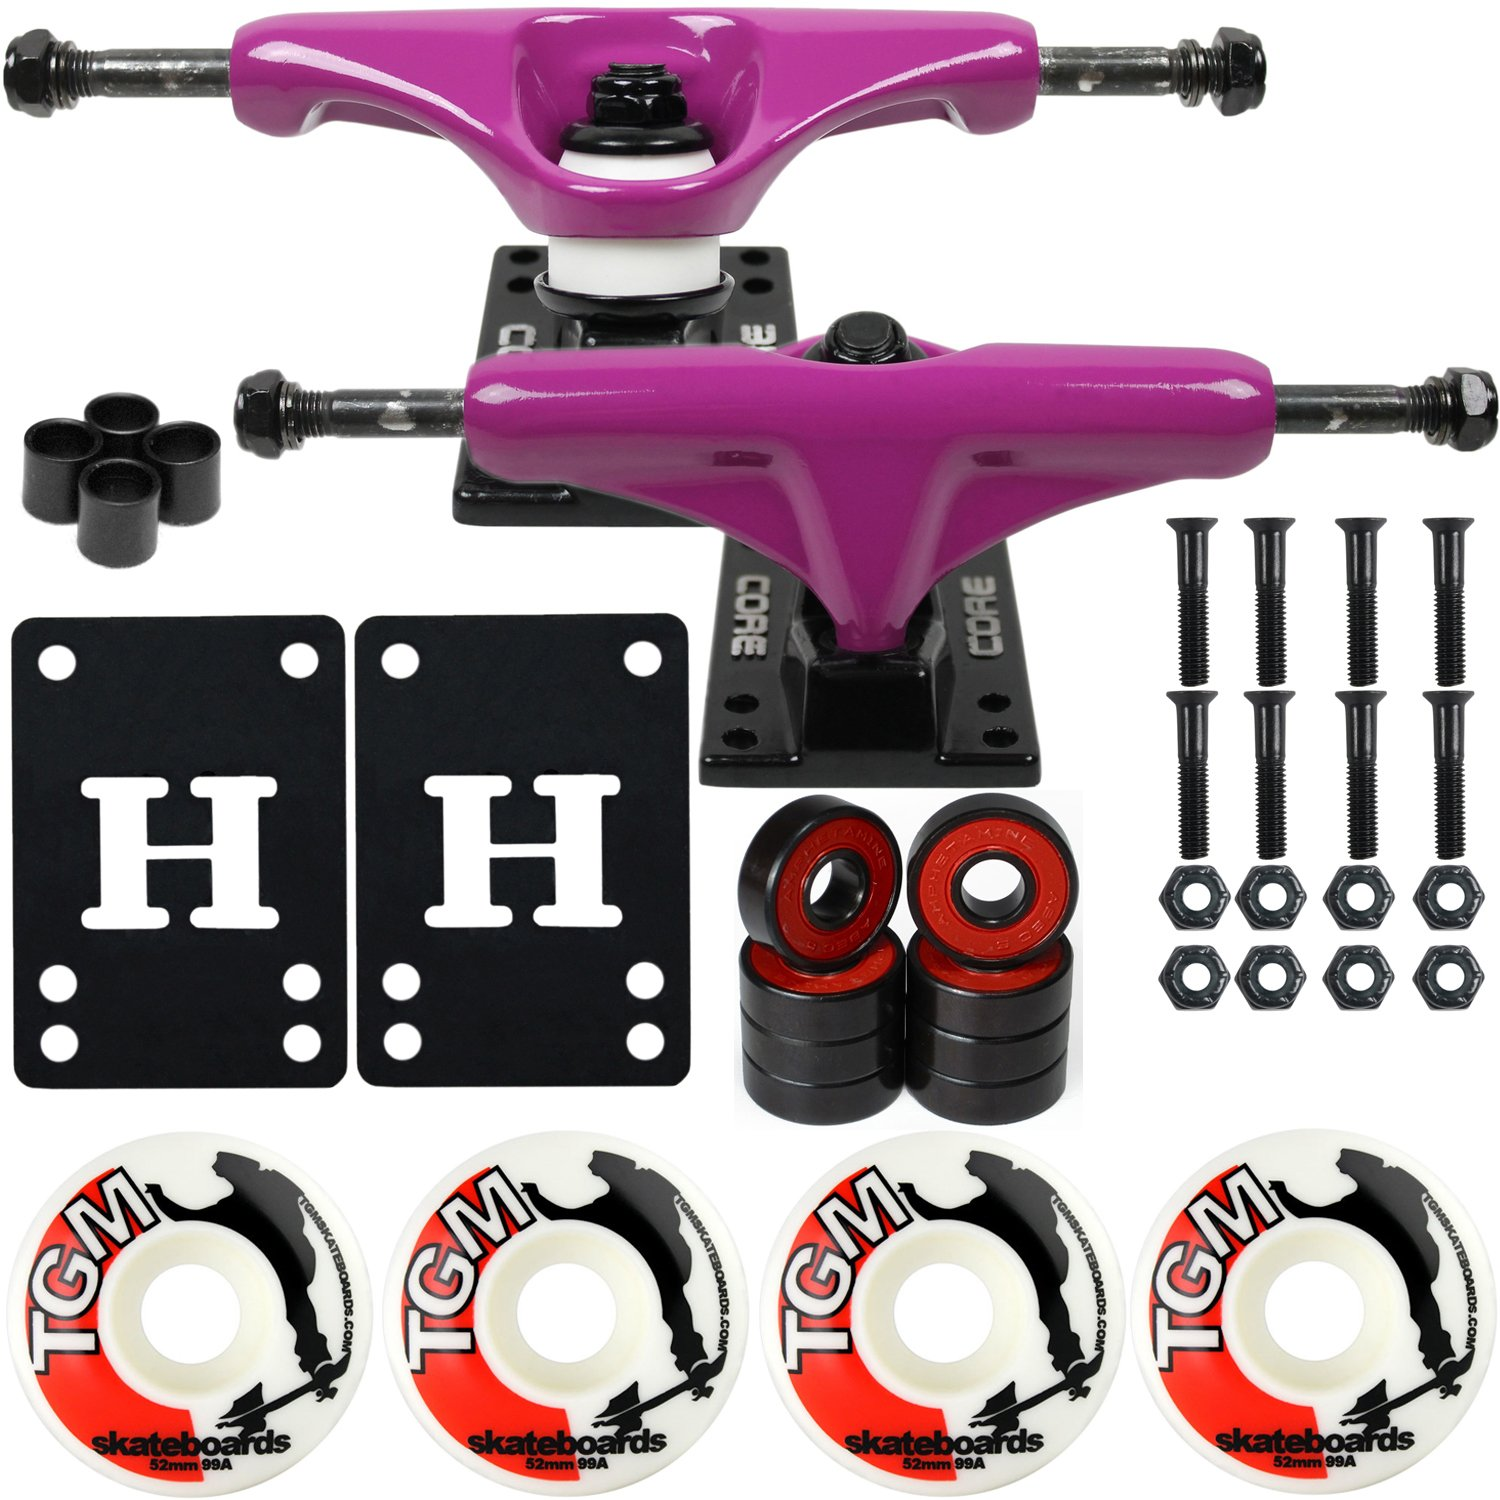 CORE Skateboard Package 5.0'' Trucks 52mm with White Wheels + Components (Purple Hanger/Black Base) by CORE